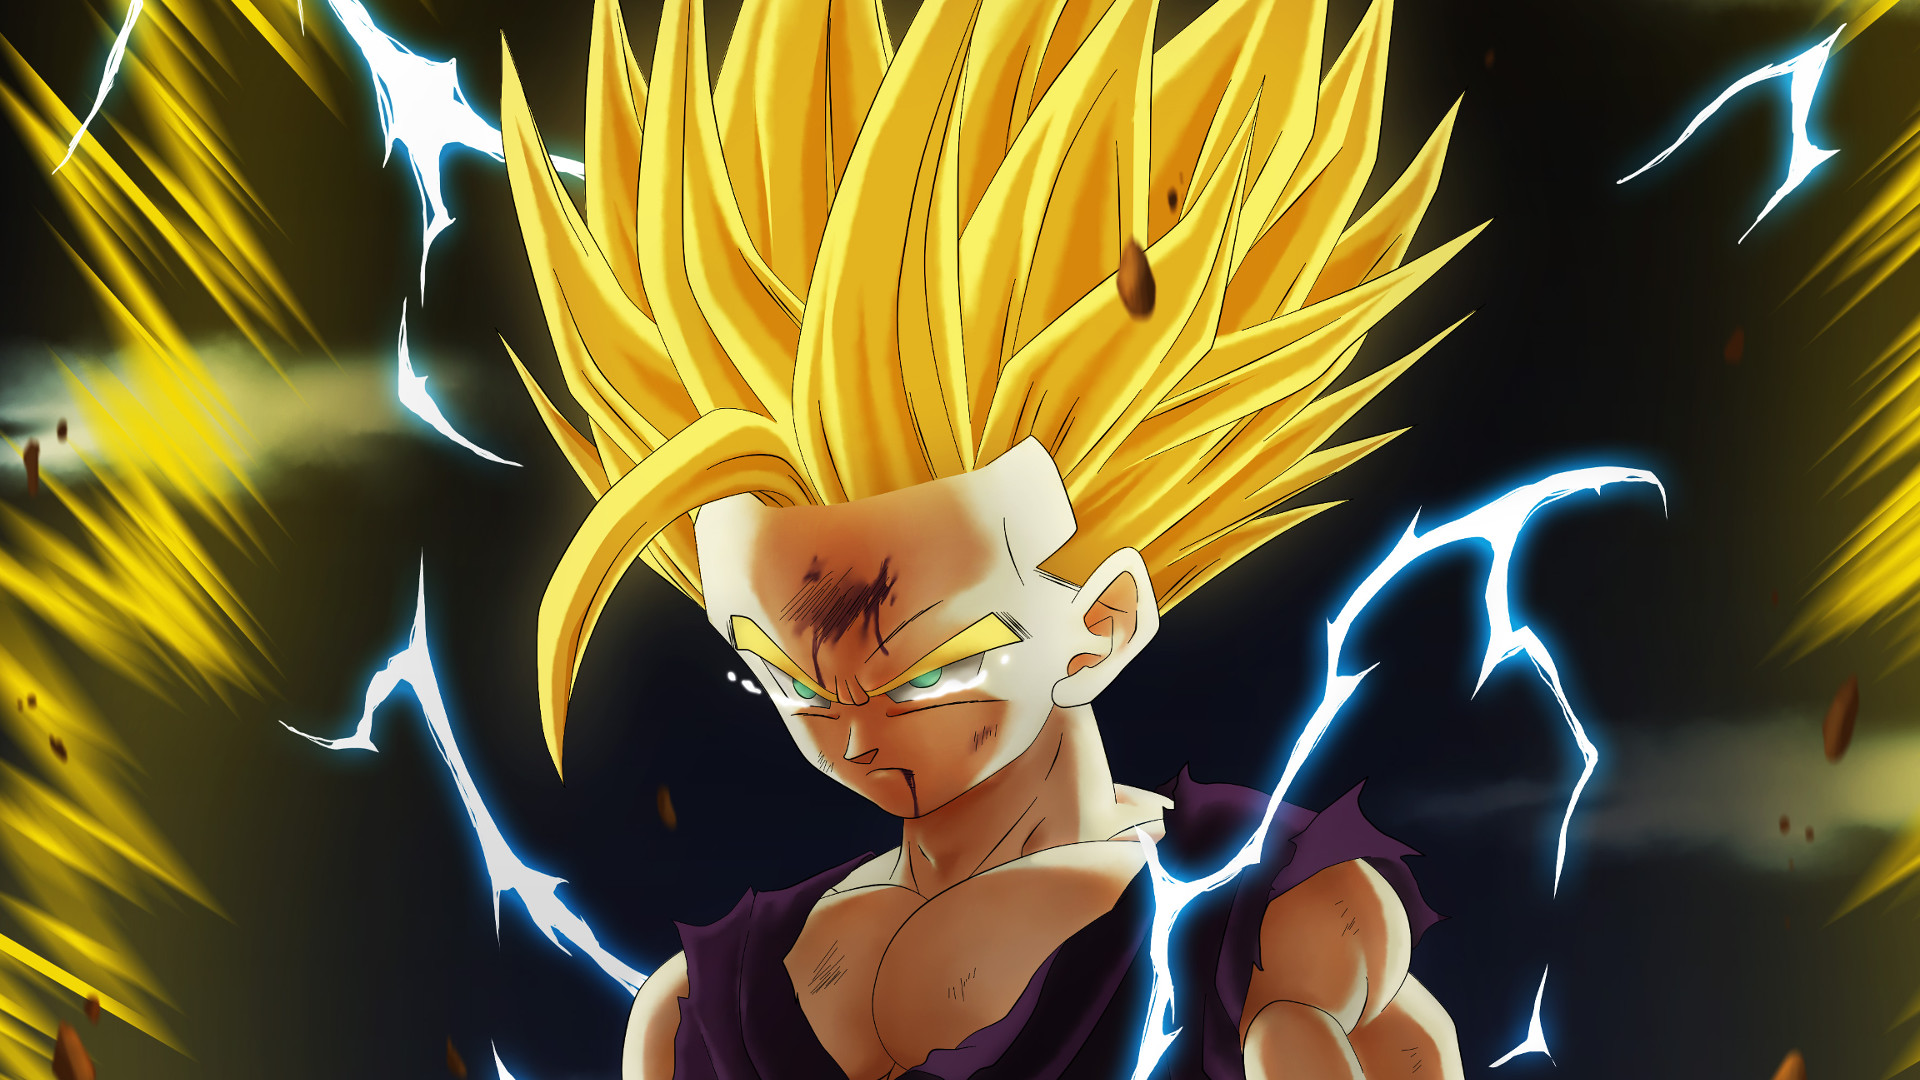 Dbz Live Wallpapers 66 Images